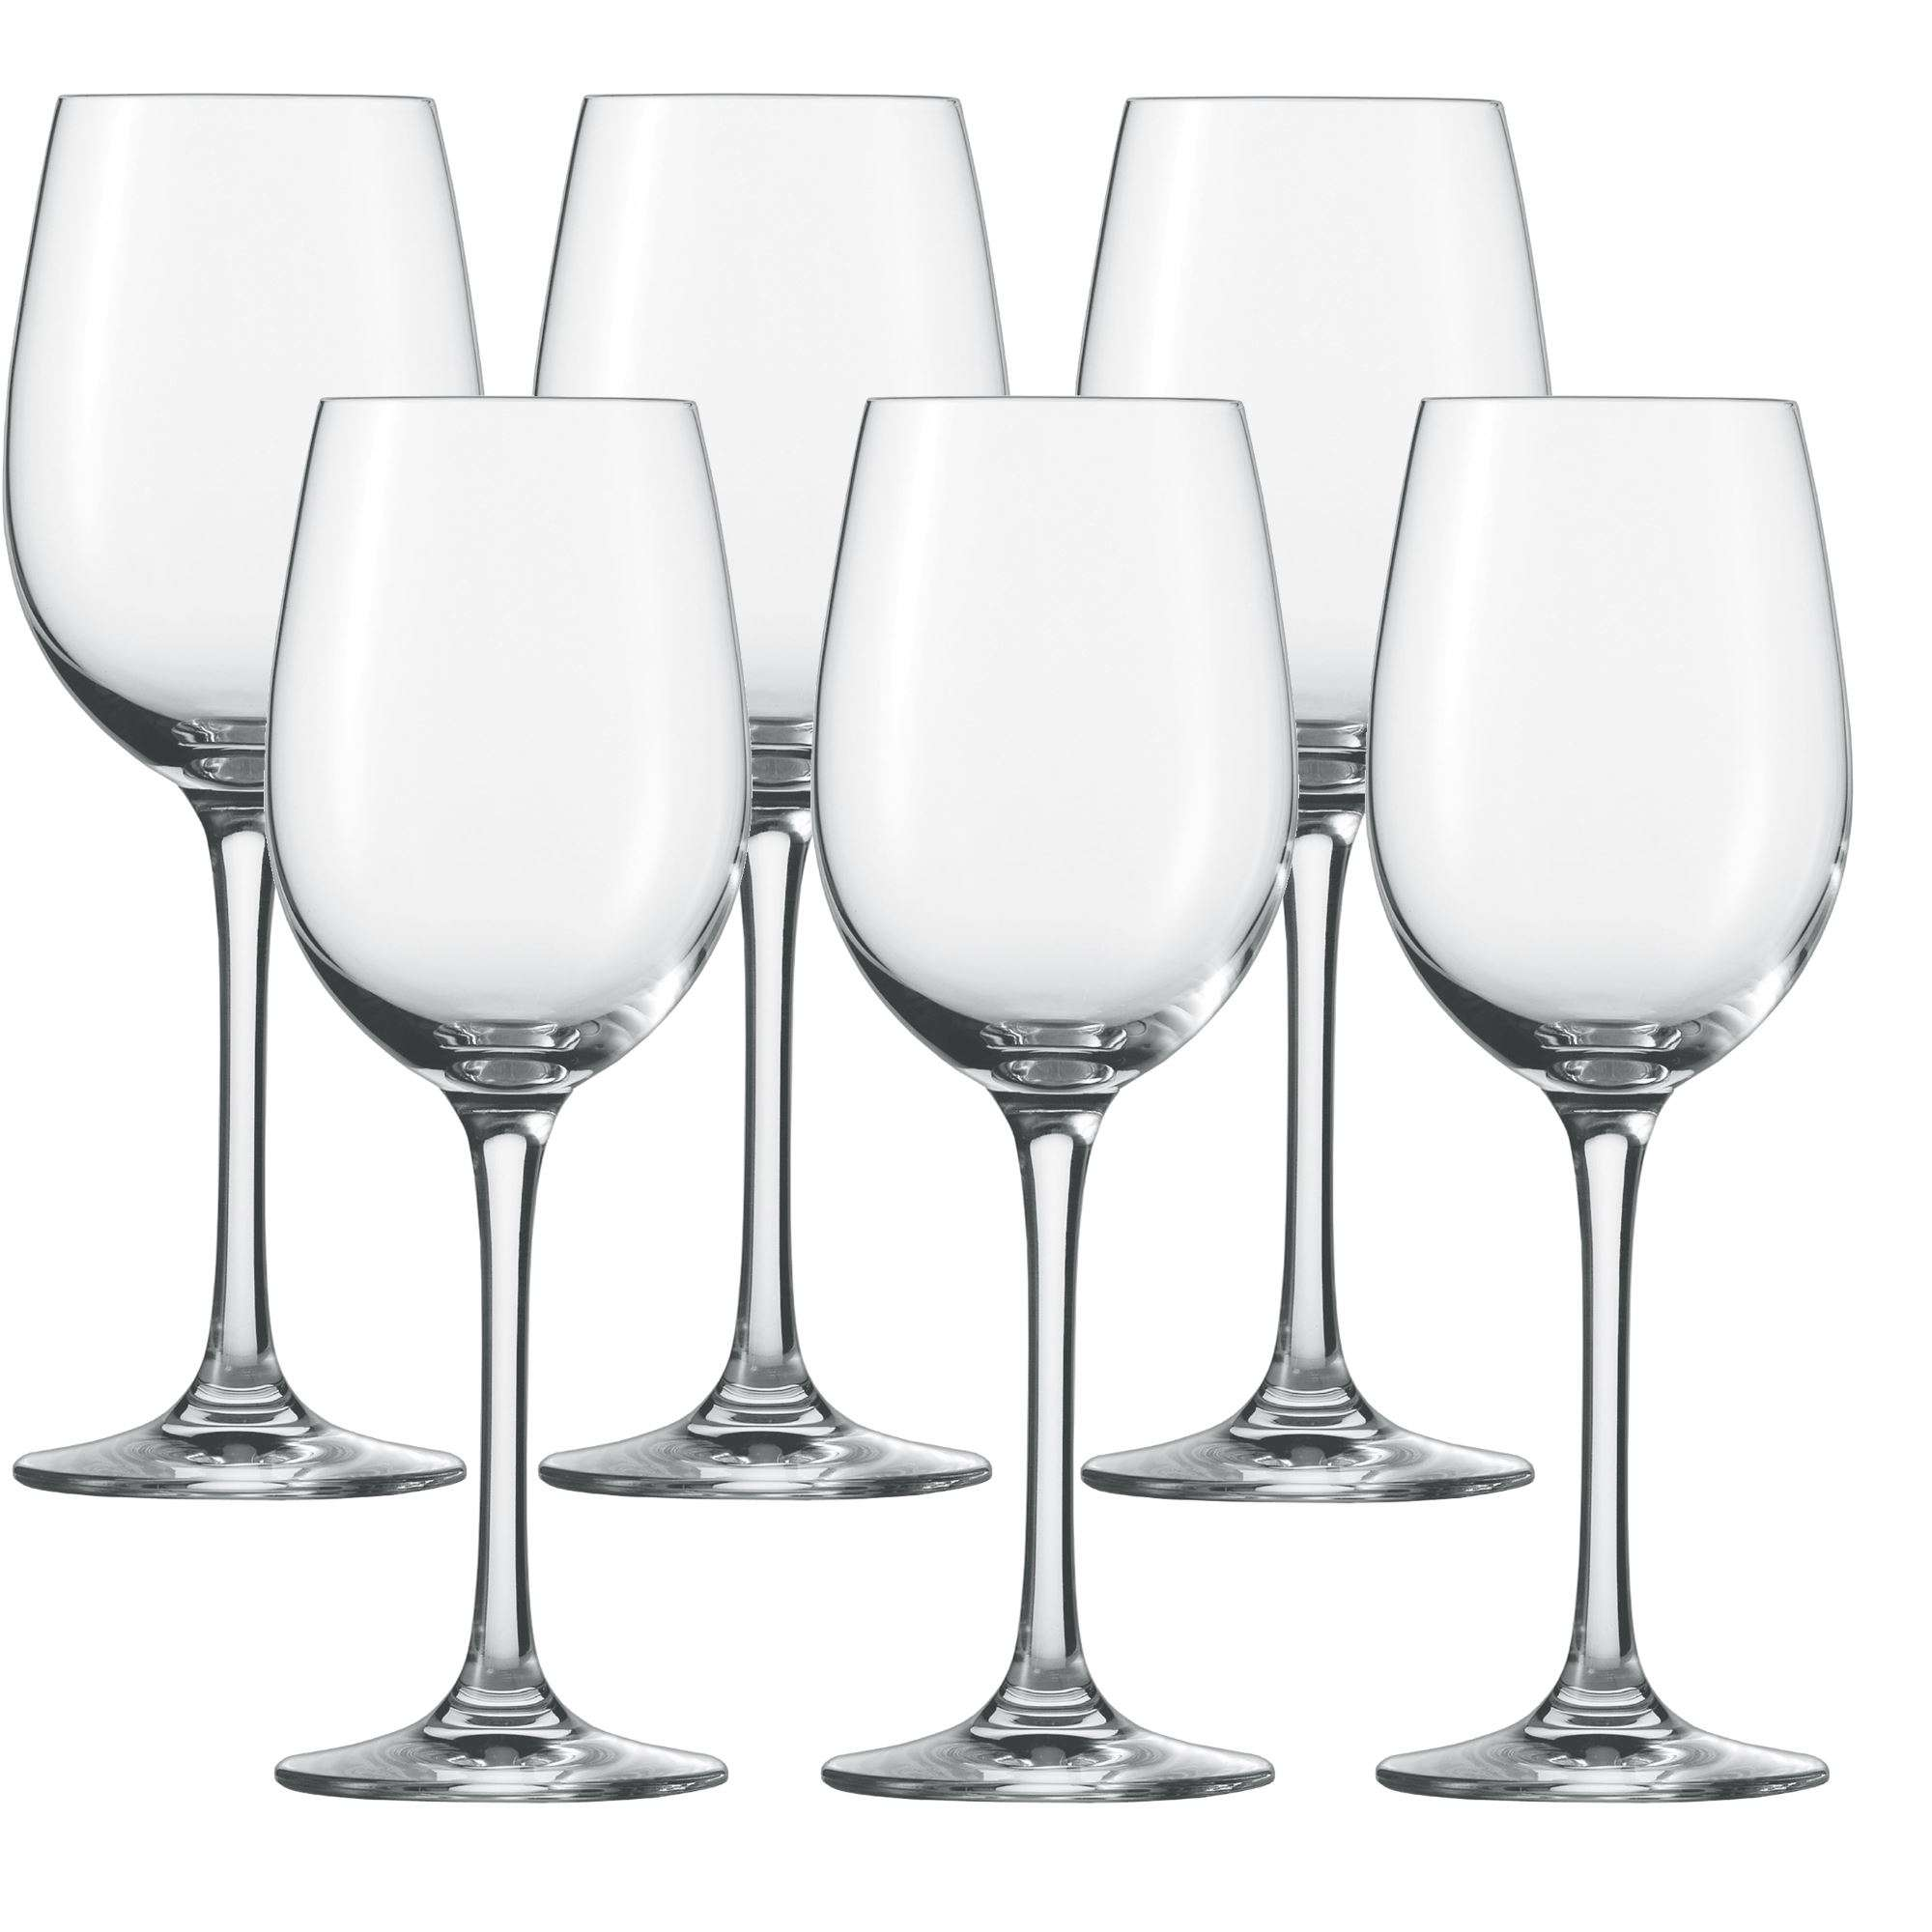 Weinkelch Glas Schott Zwiesel Classico Series Set Of 6 White Wine Glasses 312 Ml